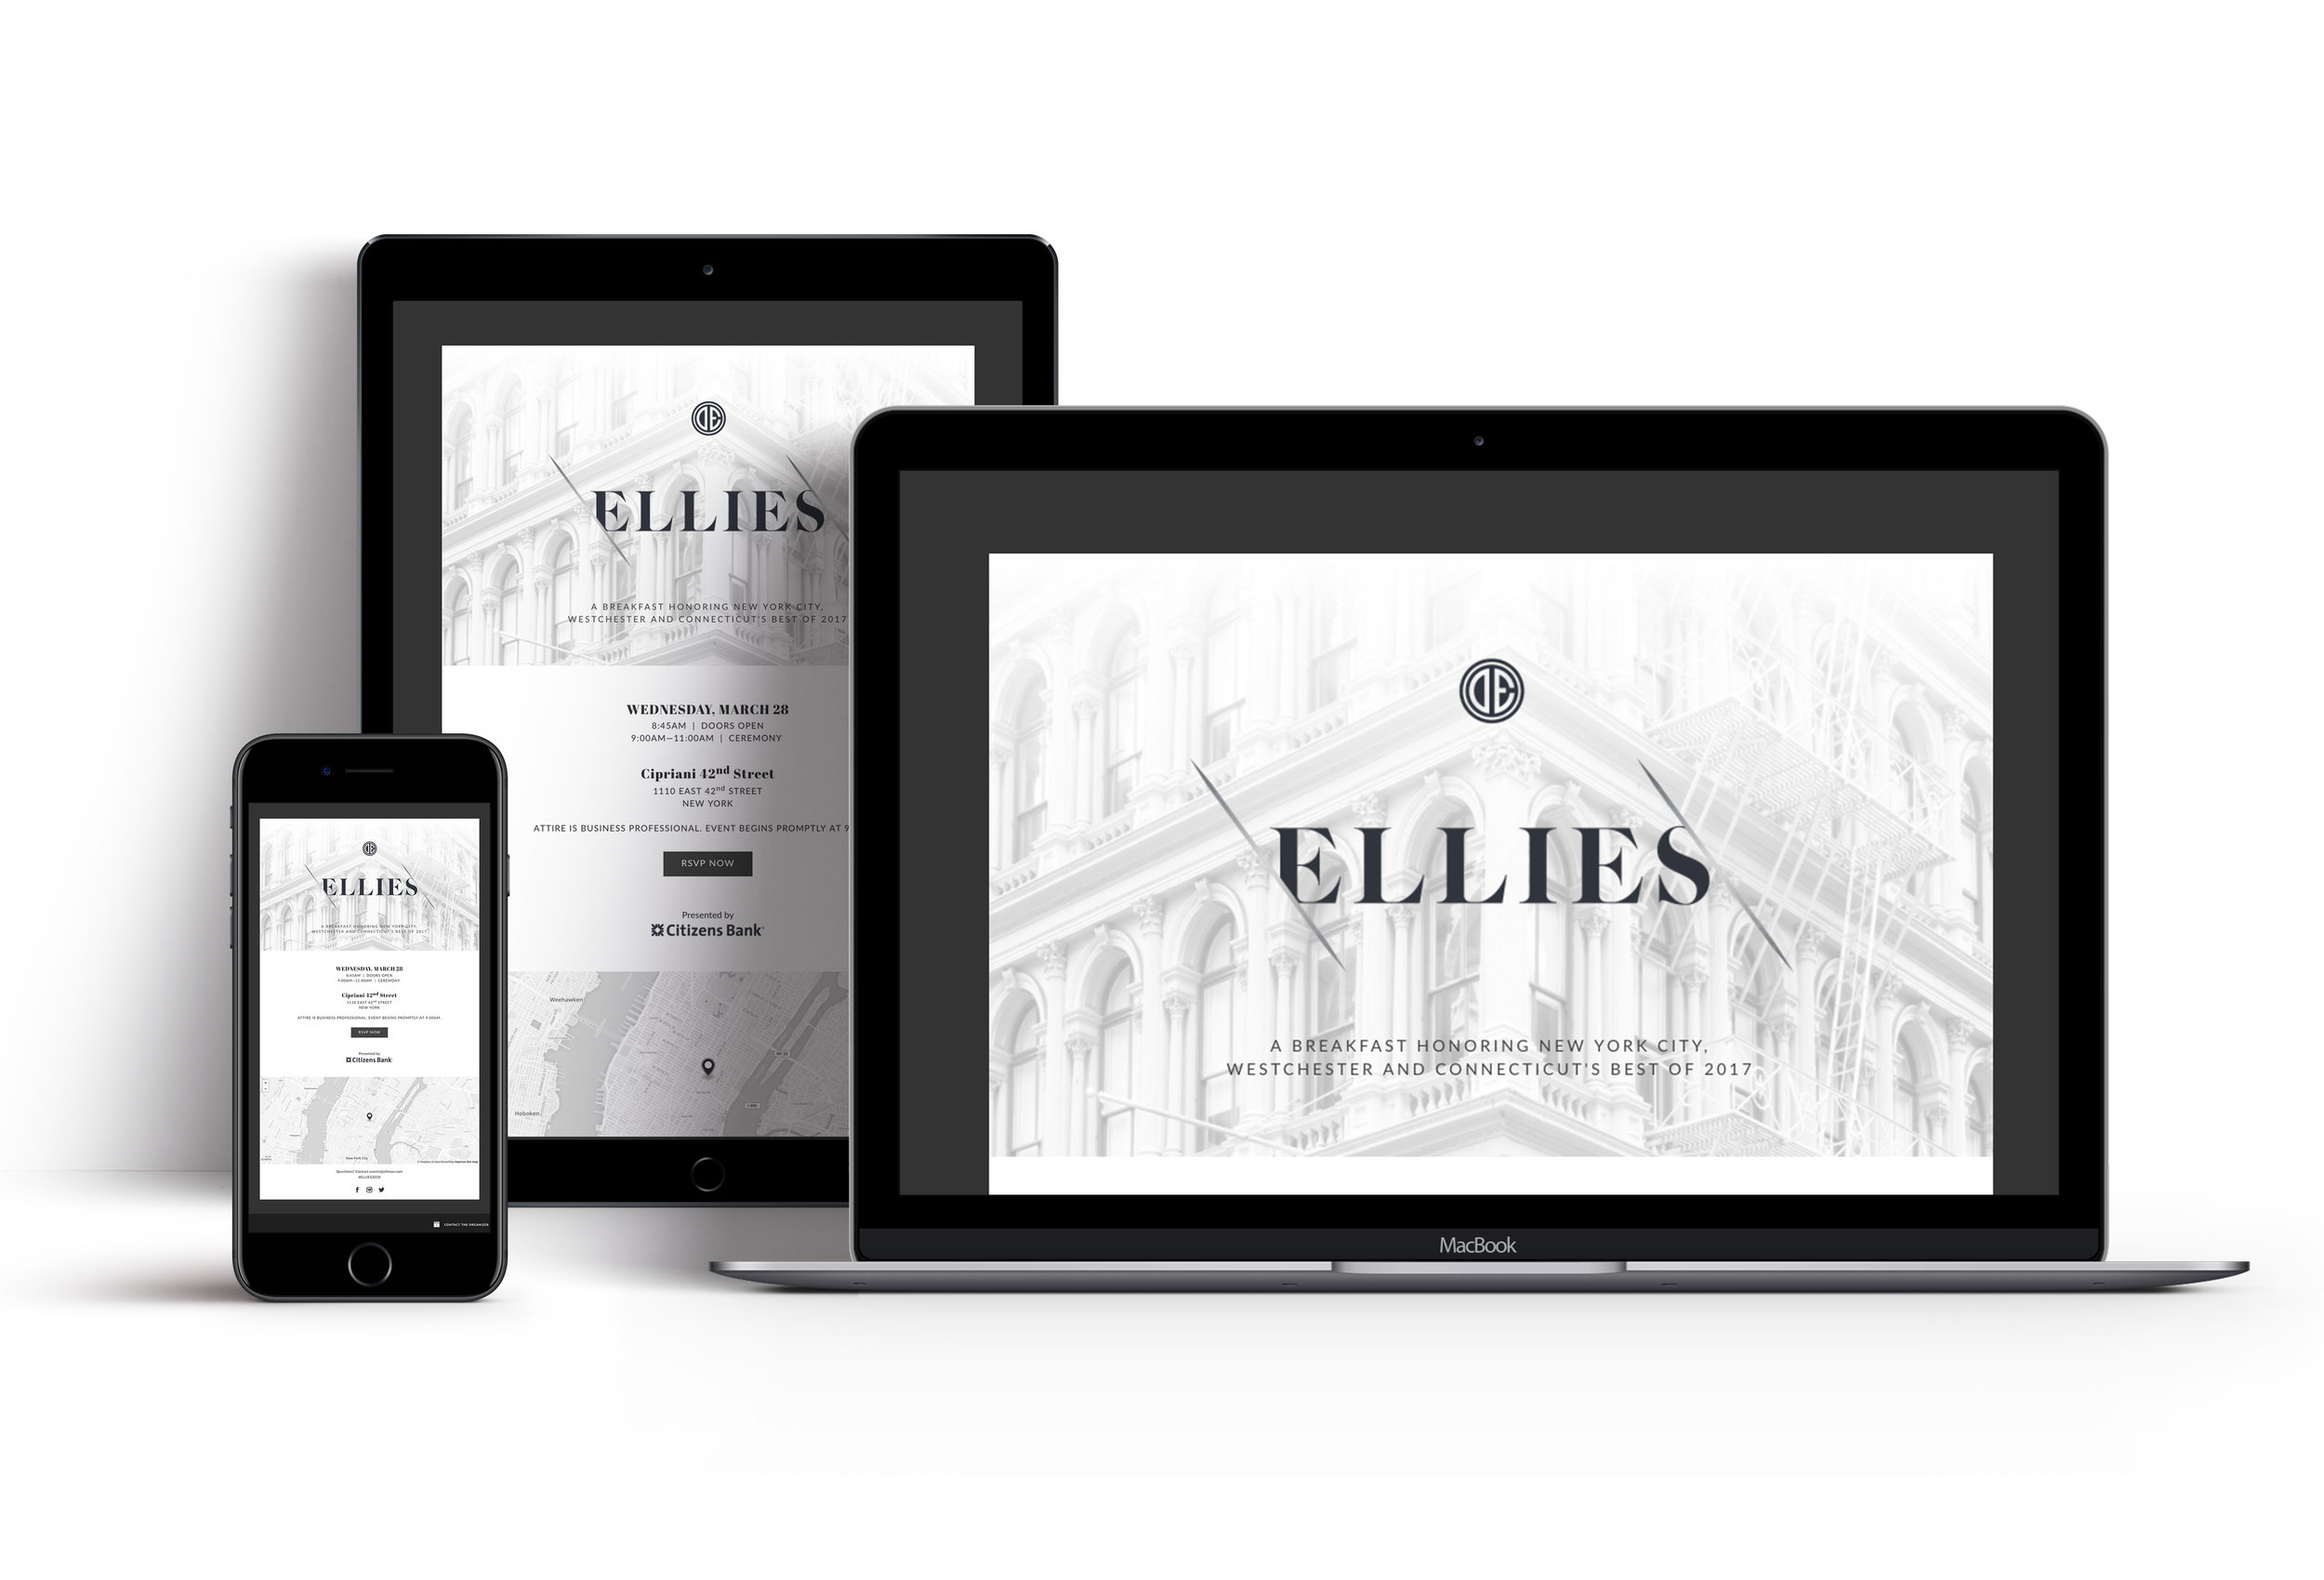 Ellies2018 Website Mockup.jpg